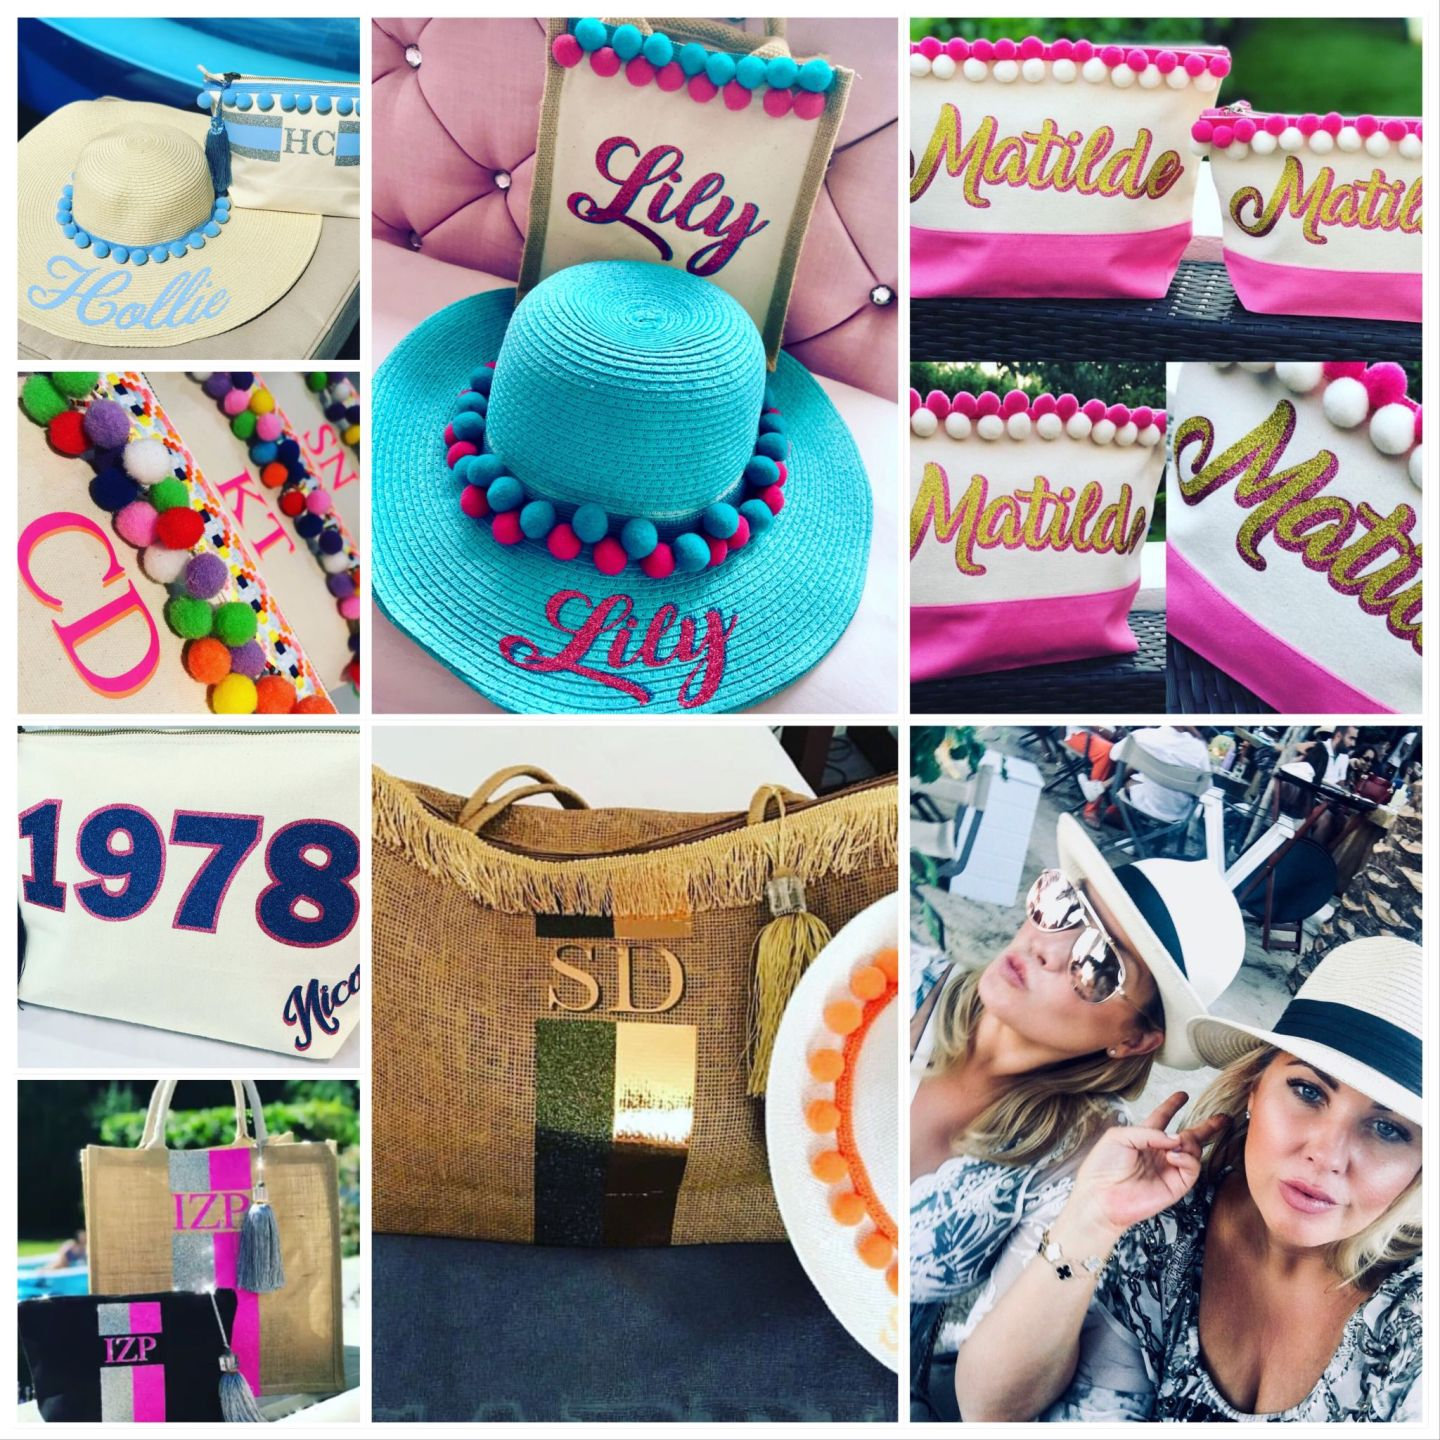 AMAZING PERSONALISED HATS AND GIFTS